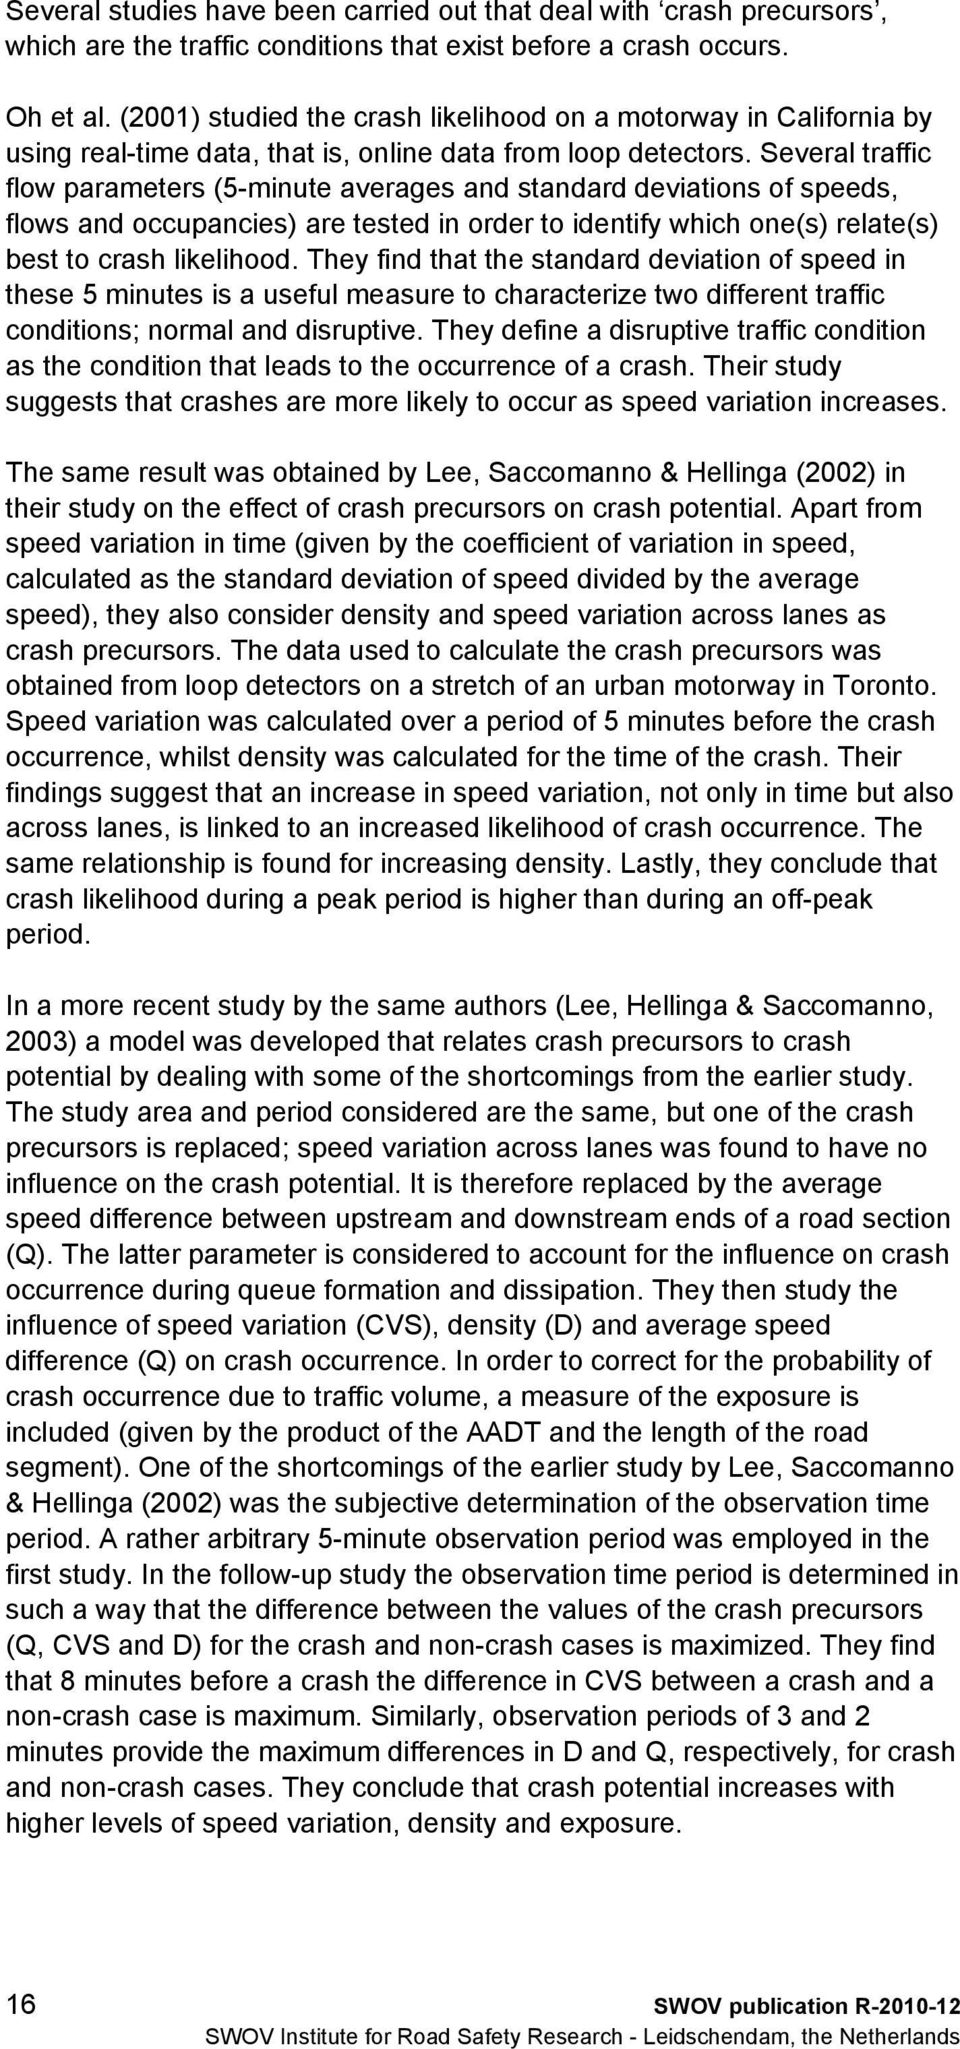 Several traffic flow parameters (5-minute averages and standard deviations of speeds, flows and occupancies) are tested in order to identify which one(s) relate(s) best to crash likelihood.